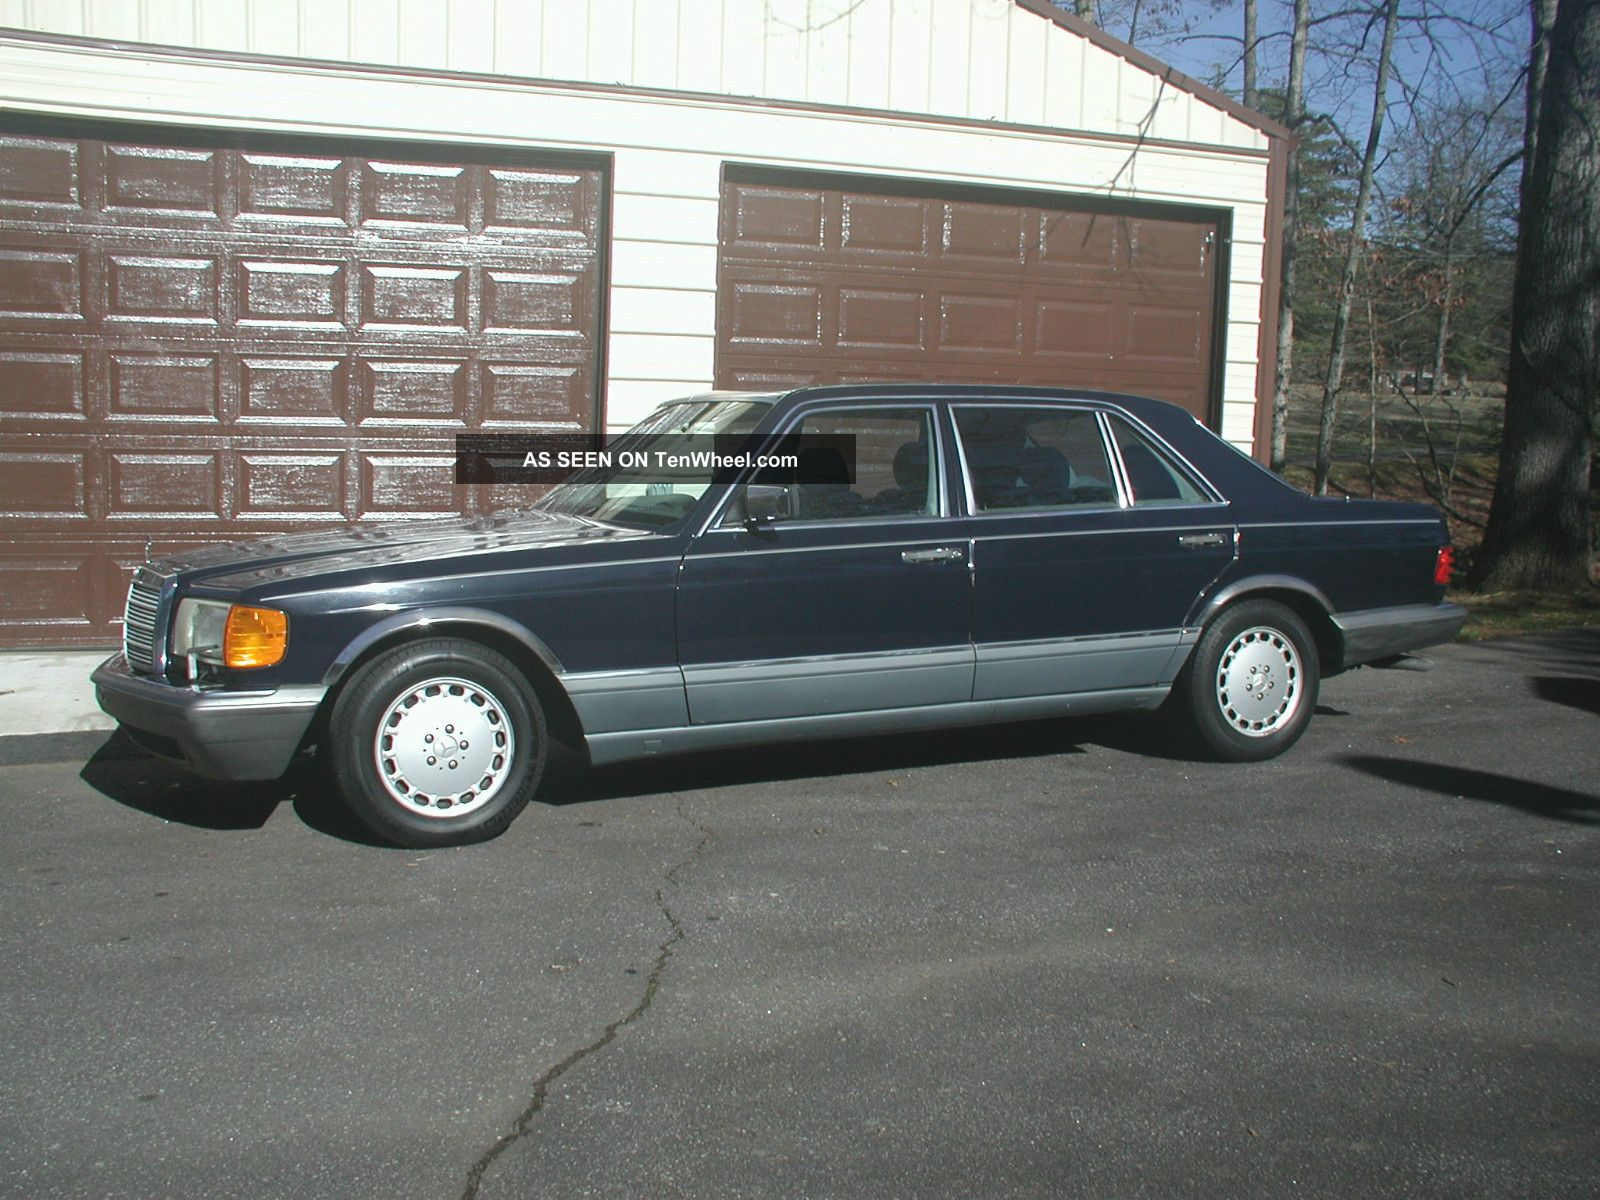 1986 mercedes benz 420 sel partially needs paint For1986 Mercedes Benz 420 Sel